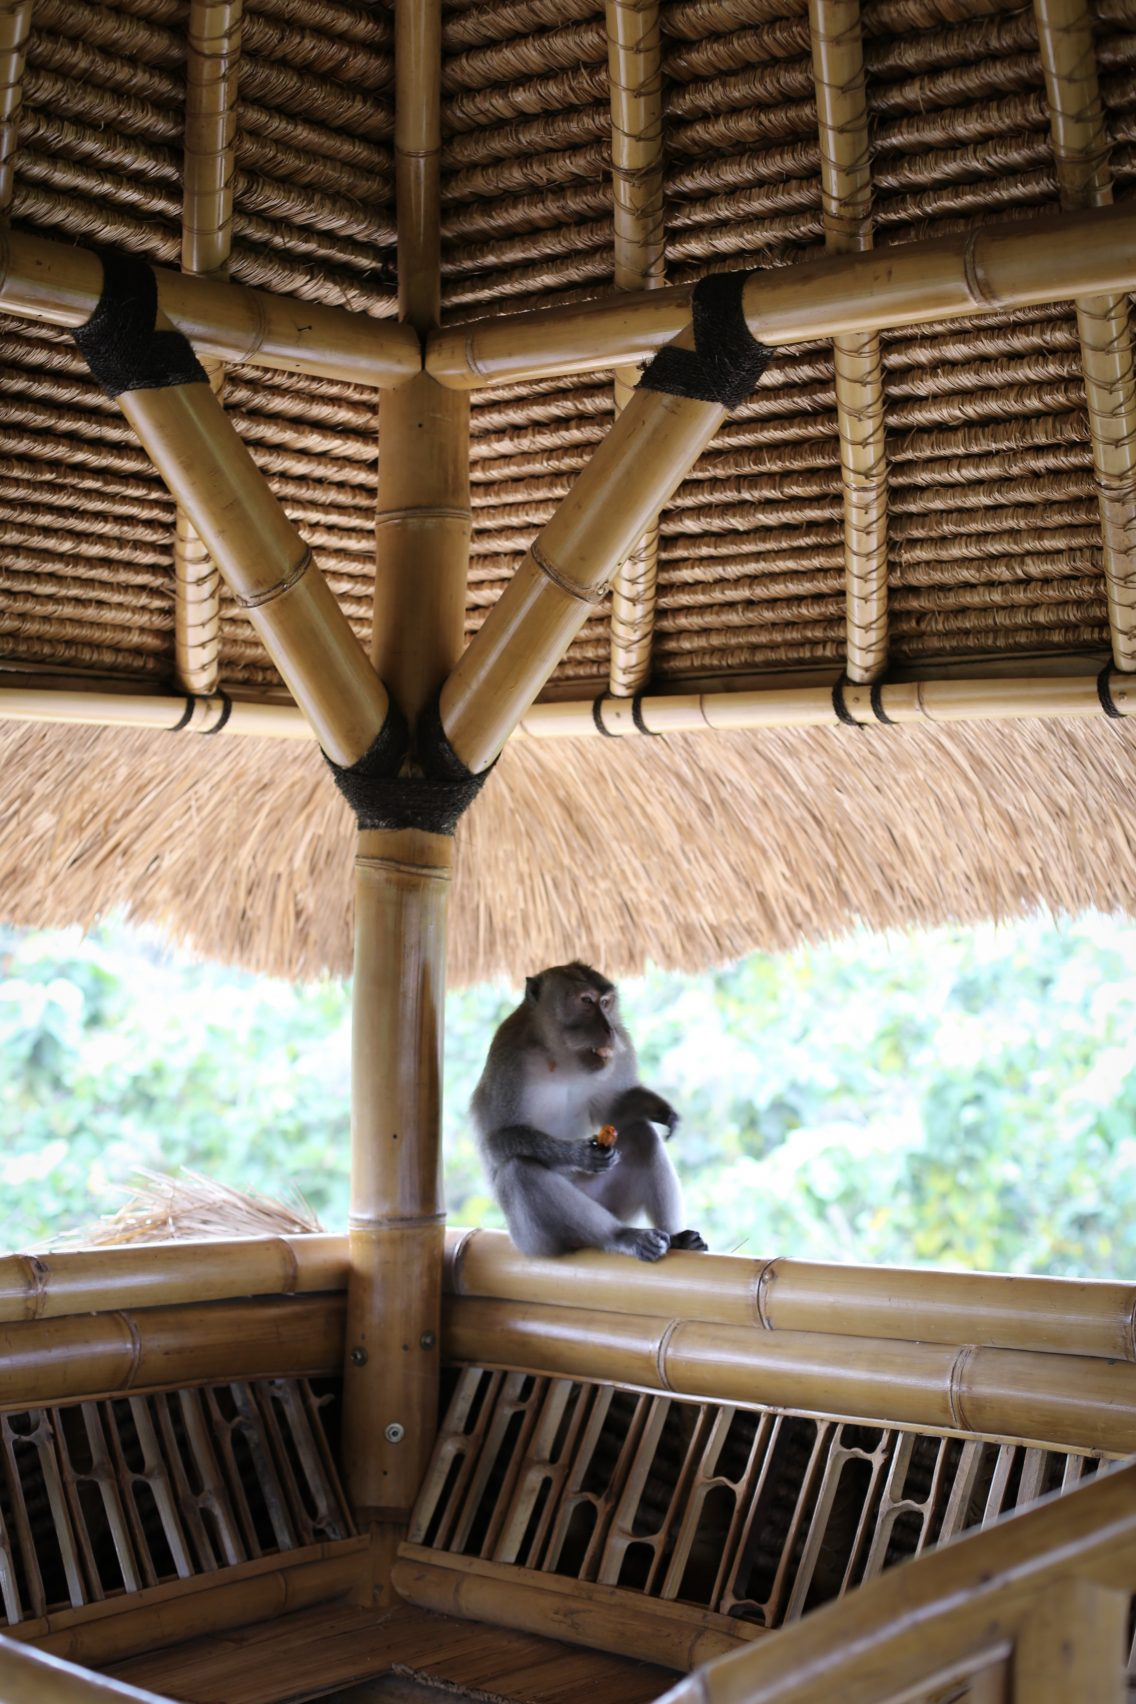 The monkey eating peacefully his piece of fruit right next to us